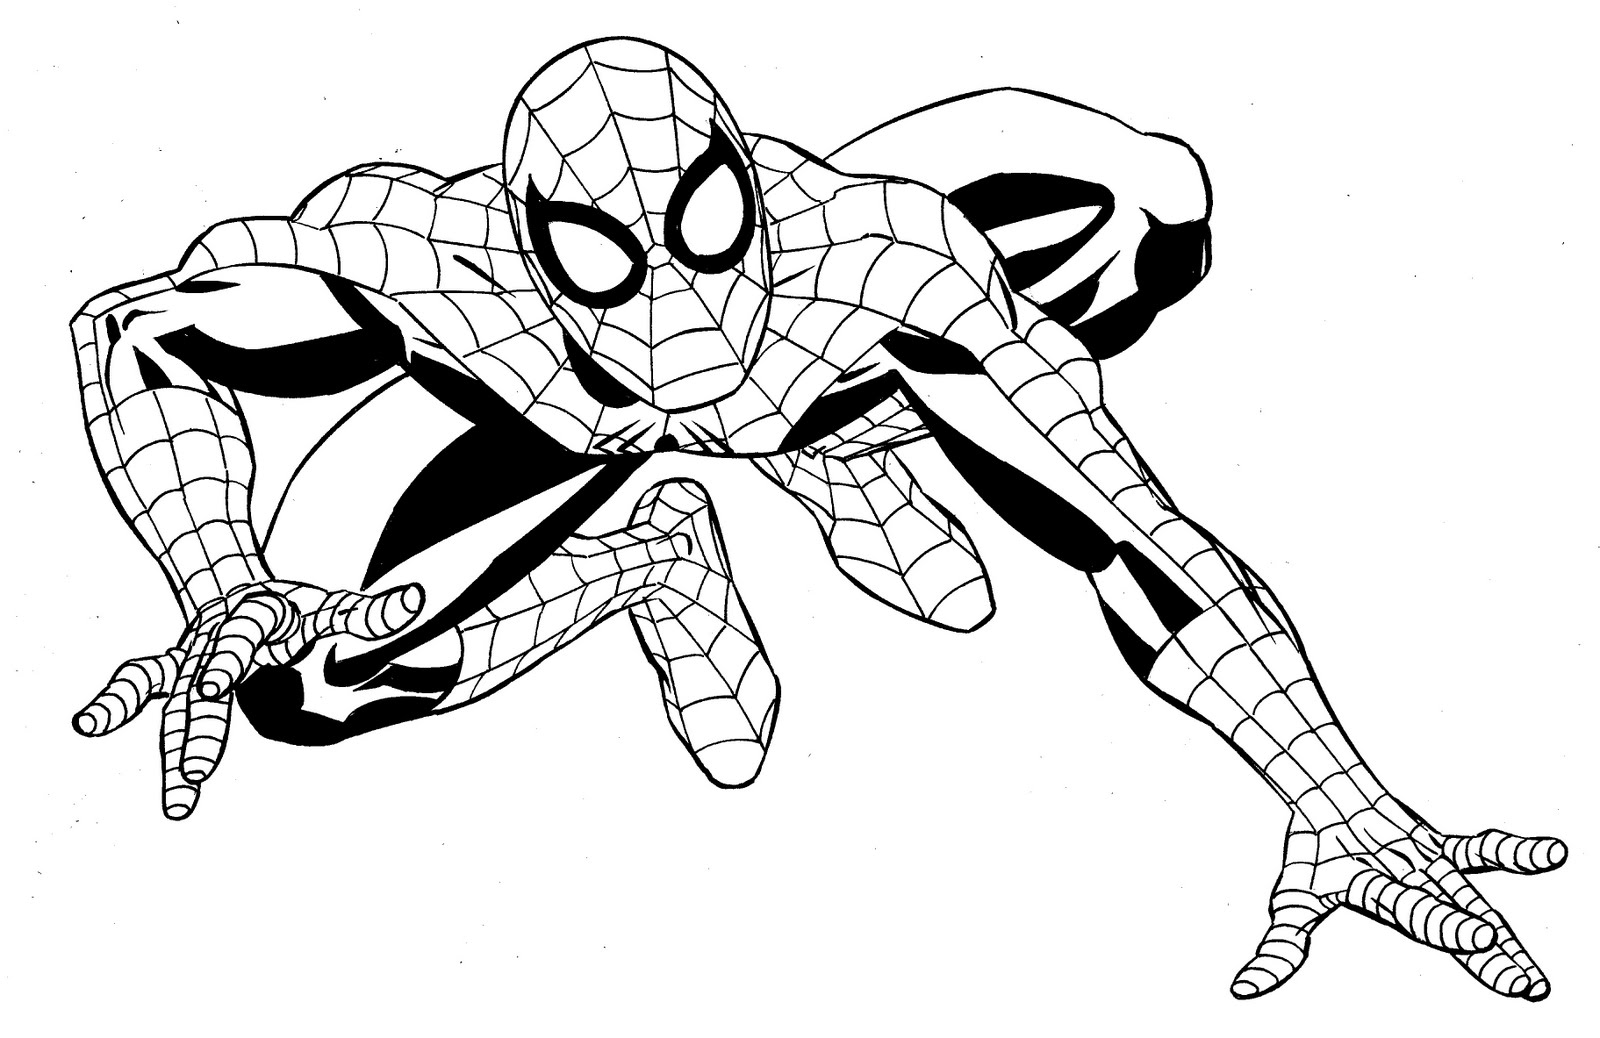 marvel coloring pictures scott koblish more disney marvel super heroes magazine coloring pictures marvel